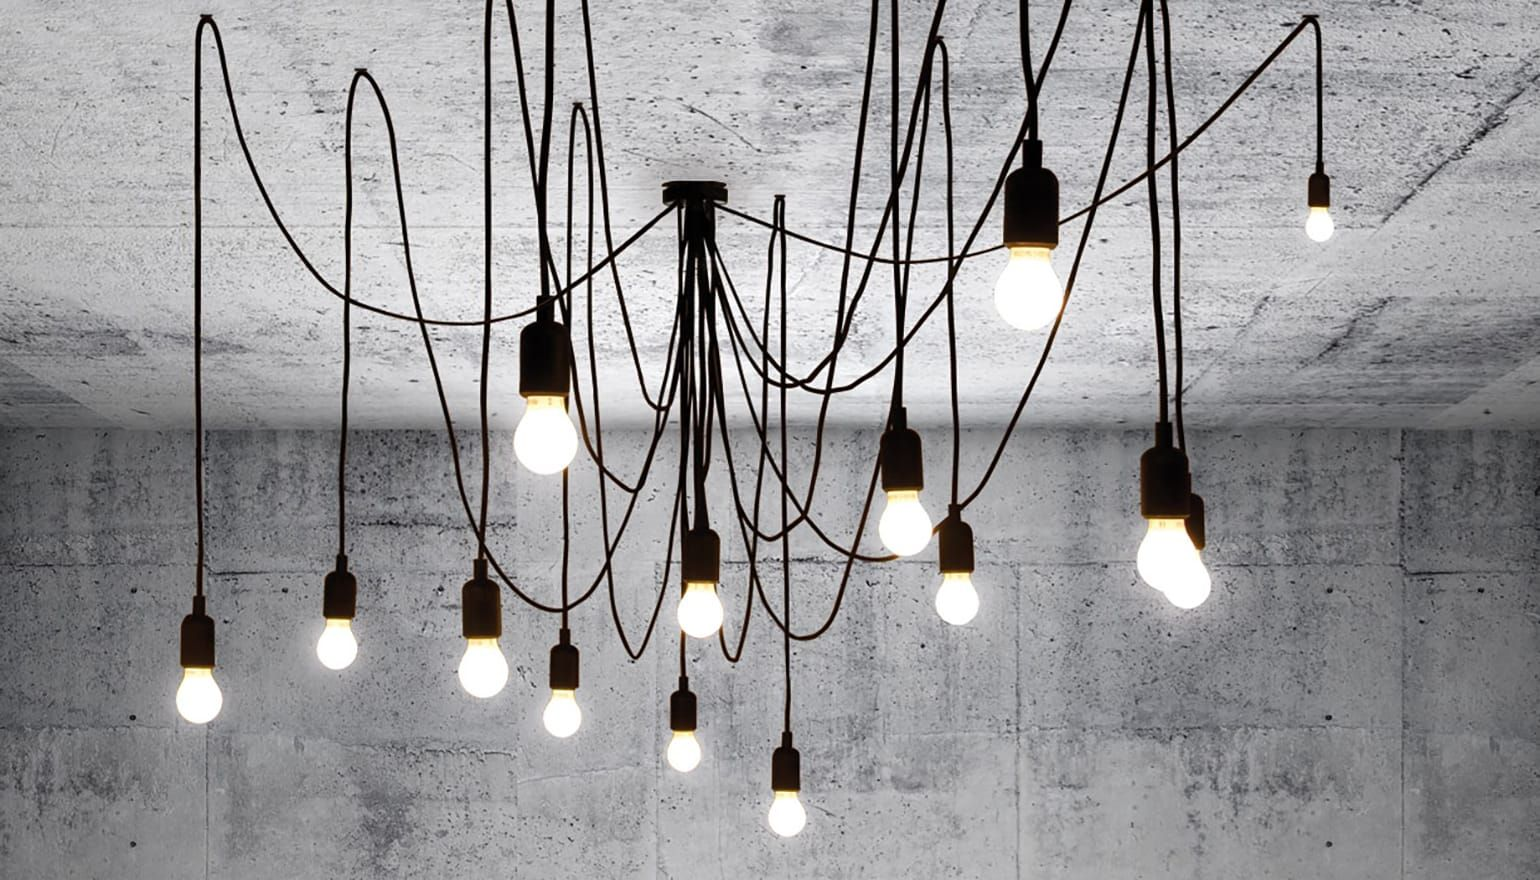 maman_web-lighting SALETTI | lamps | Pinterest | Lights and Ceilings